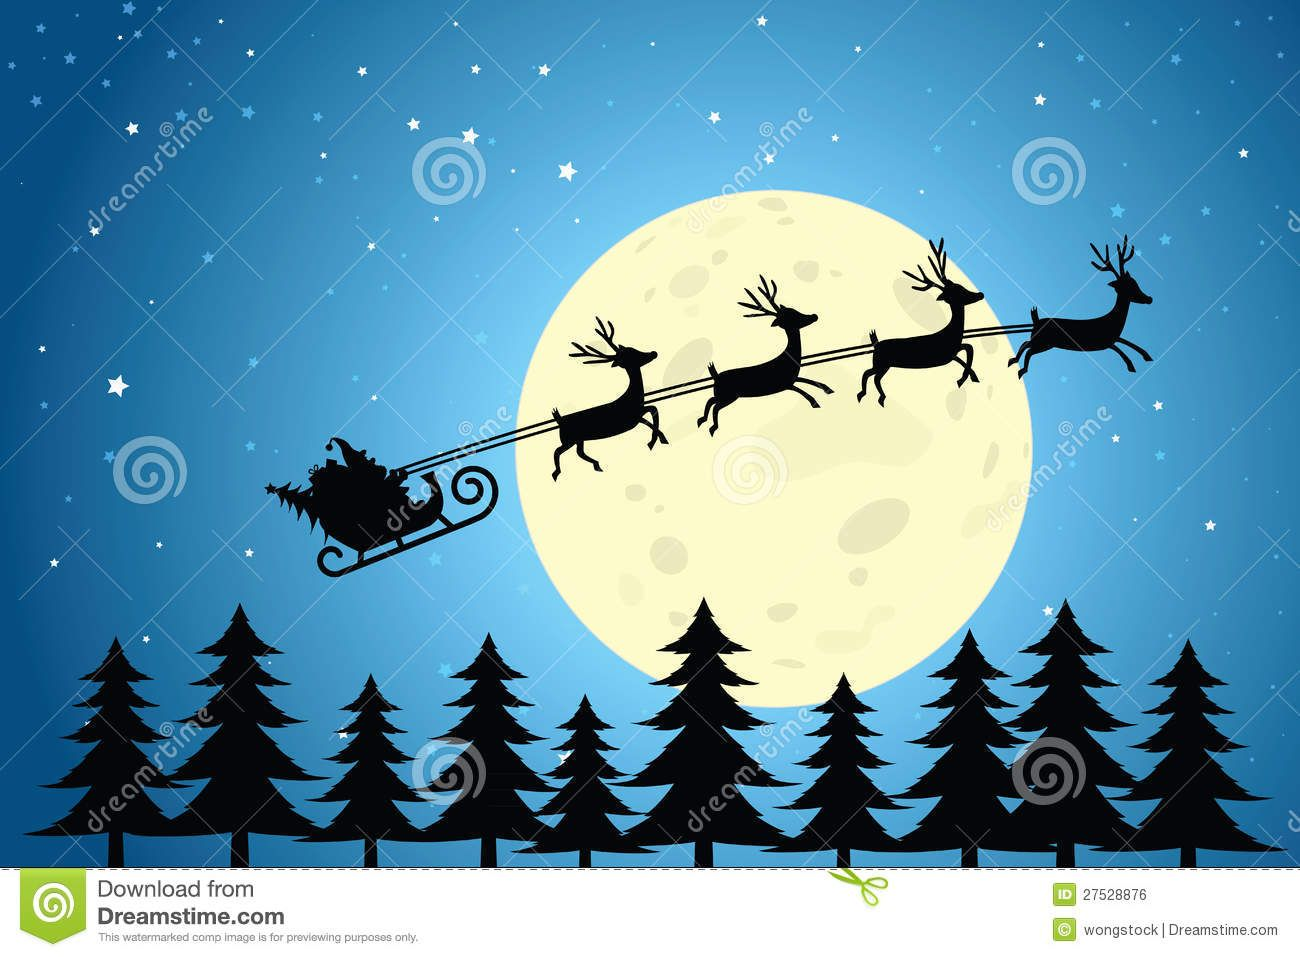 e35107969fea0 Photo about Silhouette of Santa and reindeer flying in front of the moon  and over the tree-tops. Illustration of trees